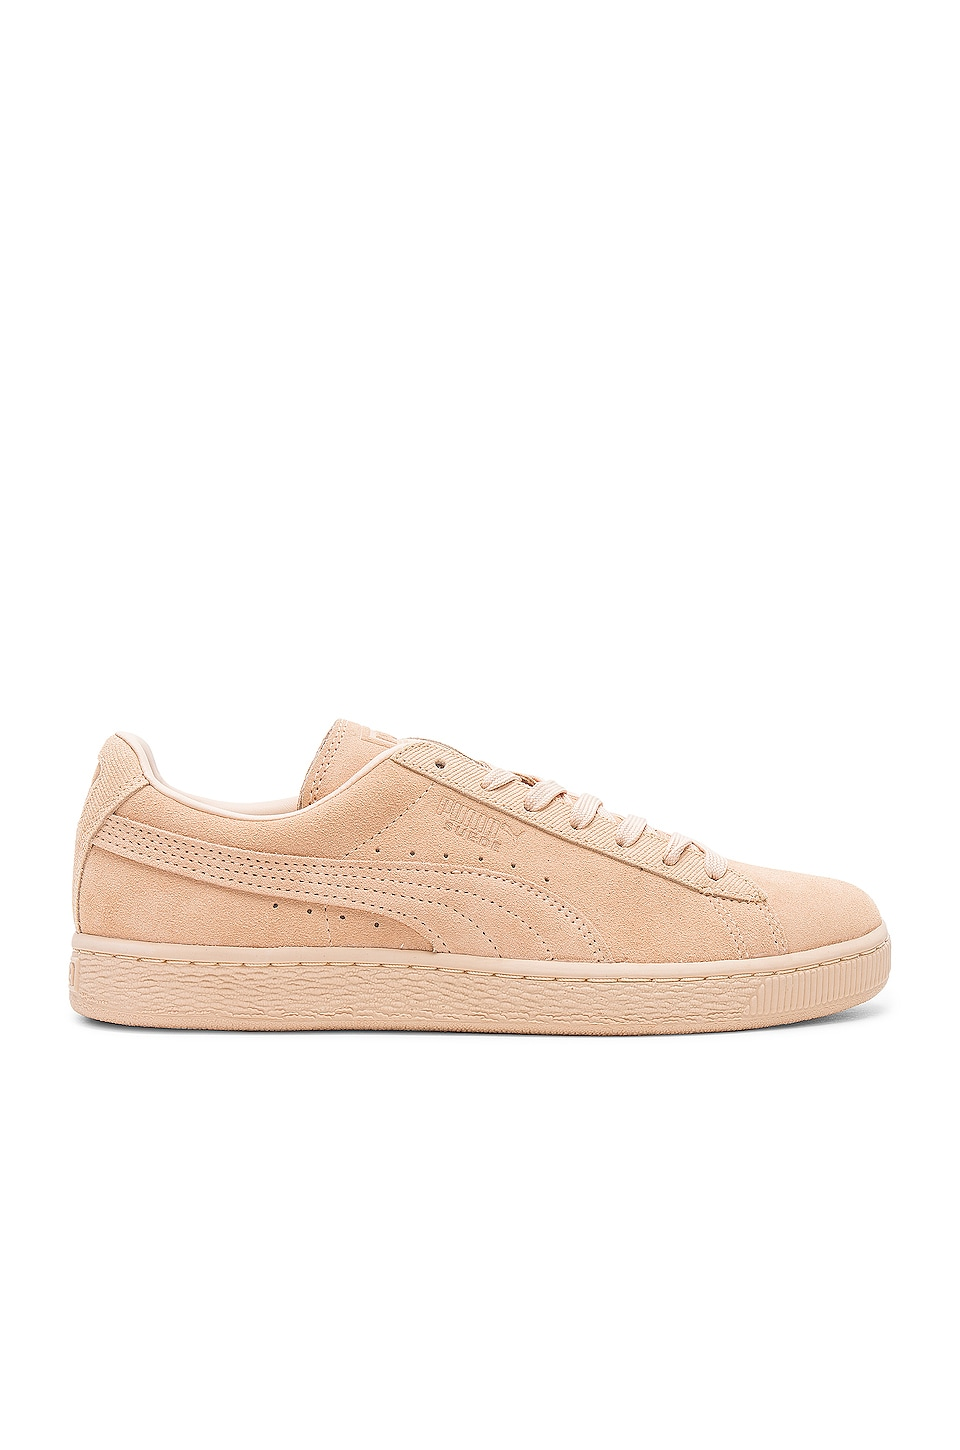 wholesale dealer d247f 879bf Puma Select Suede Classic Tonal in Natural Vachetta | REVOLVE